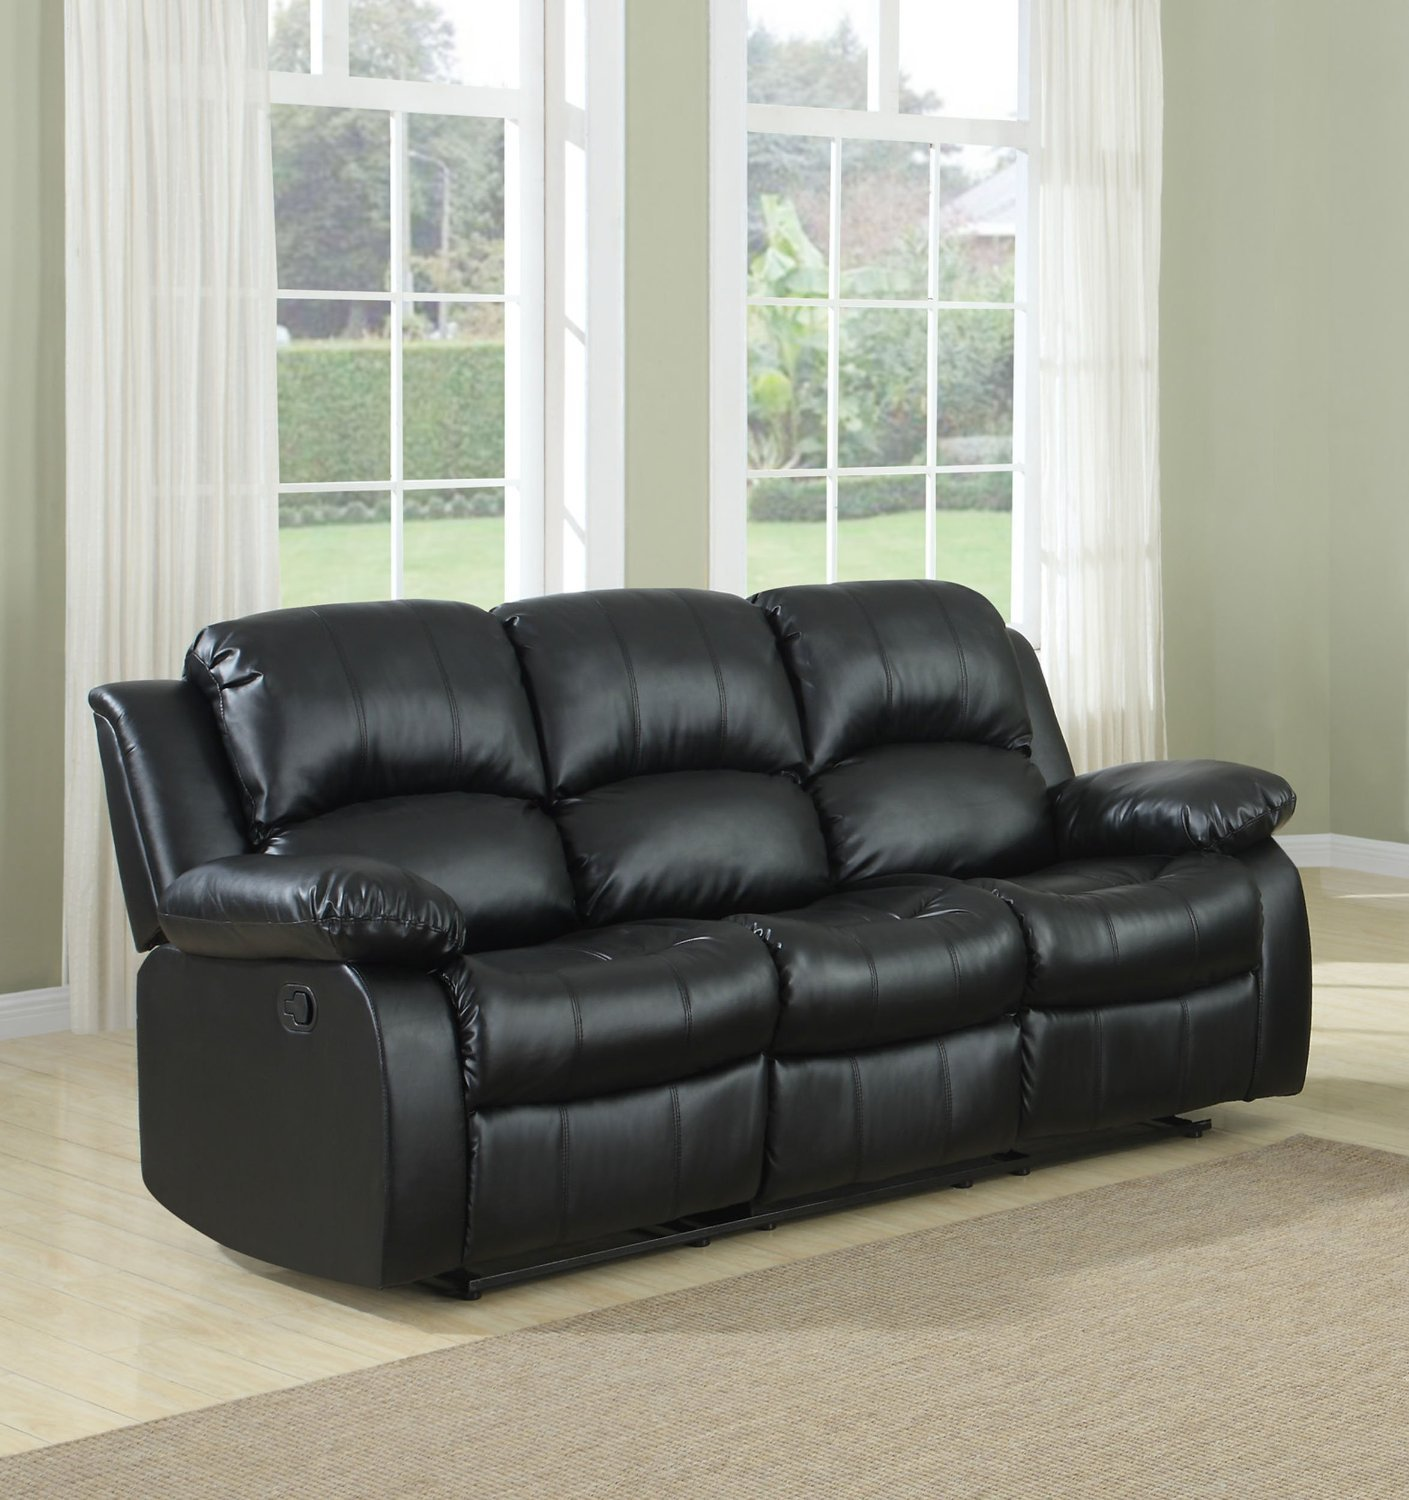 Amazon Bonded Leather Double Recliner Sofa Kitchen & Dining